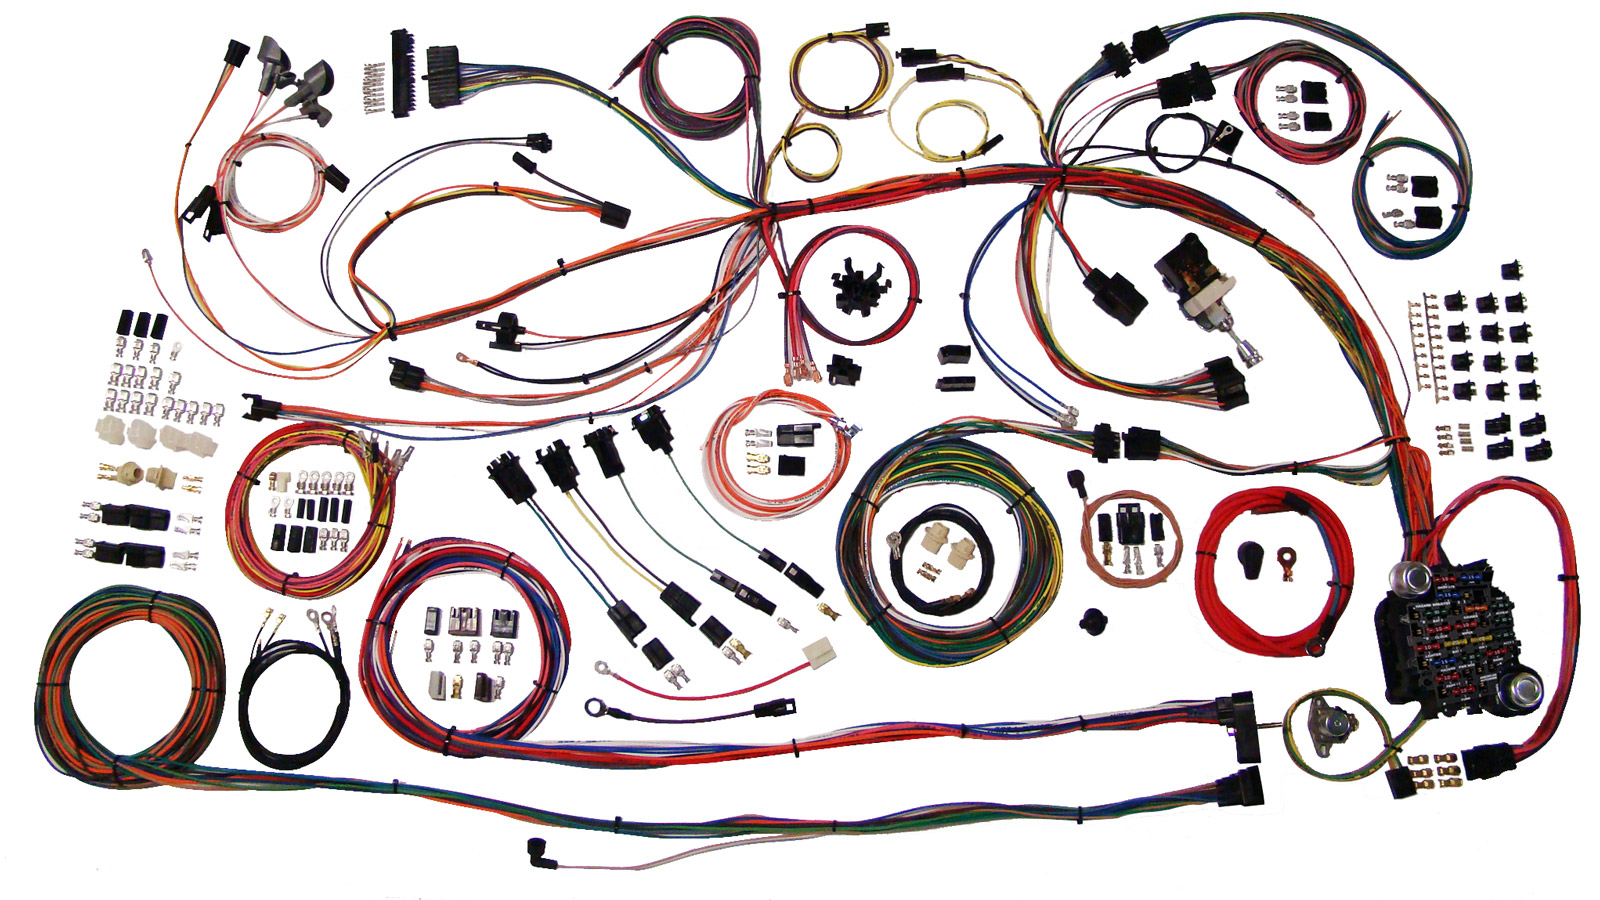 hight resolution of 68 69 chevelle classic update wiring harness